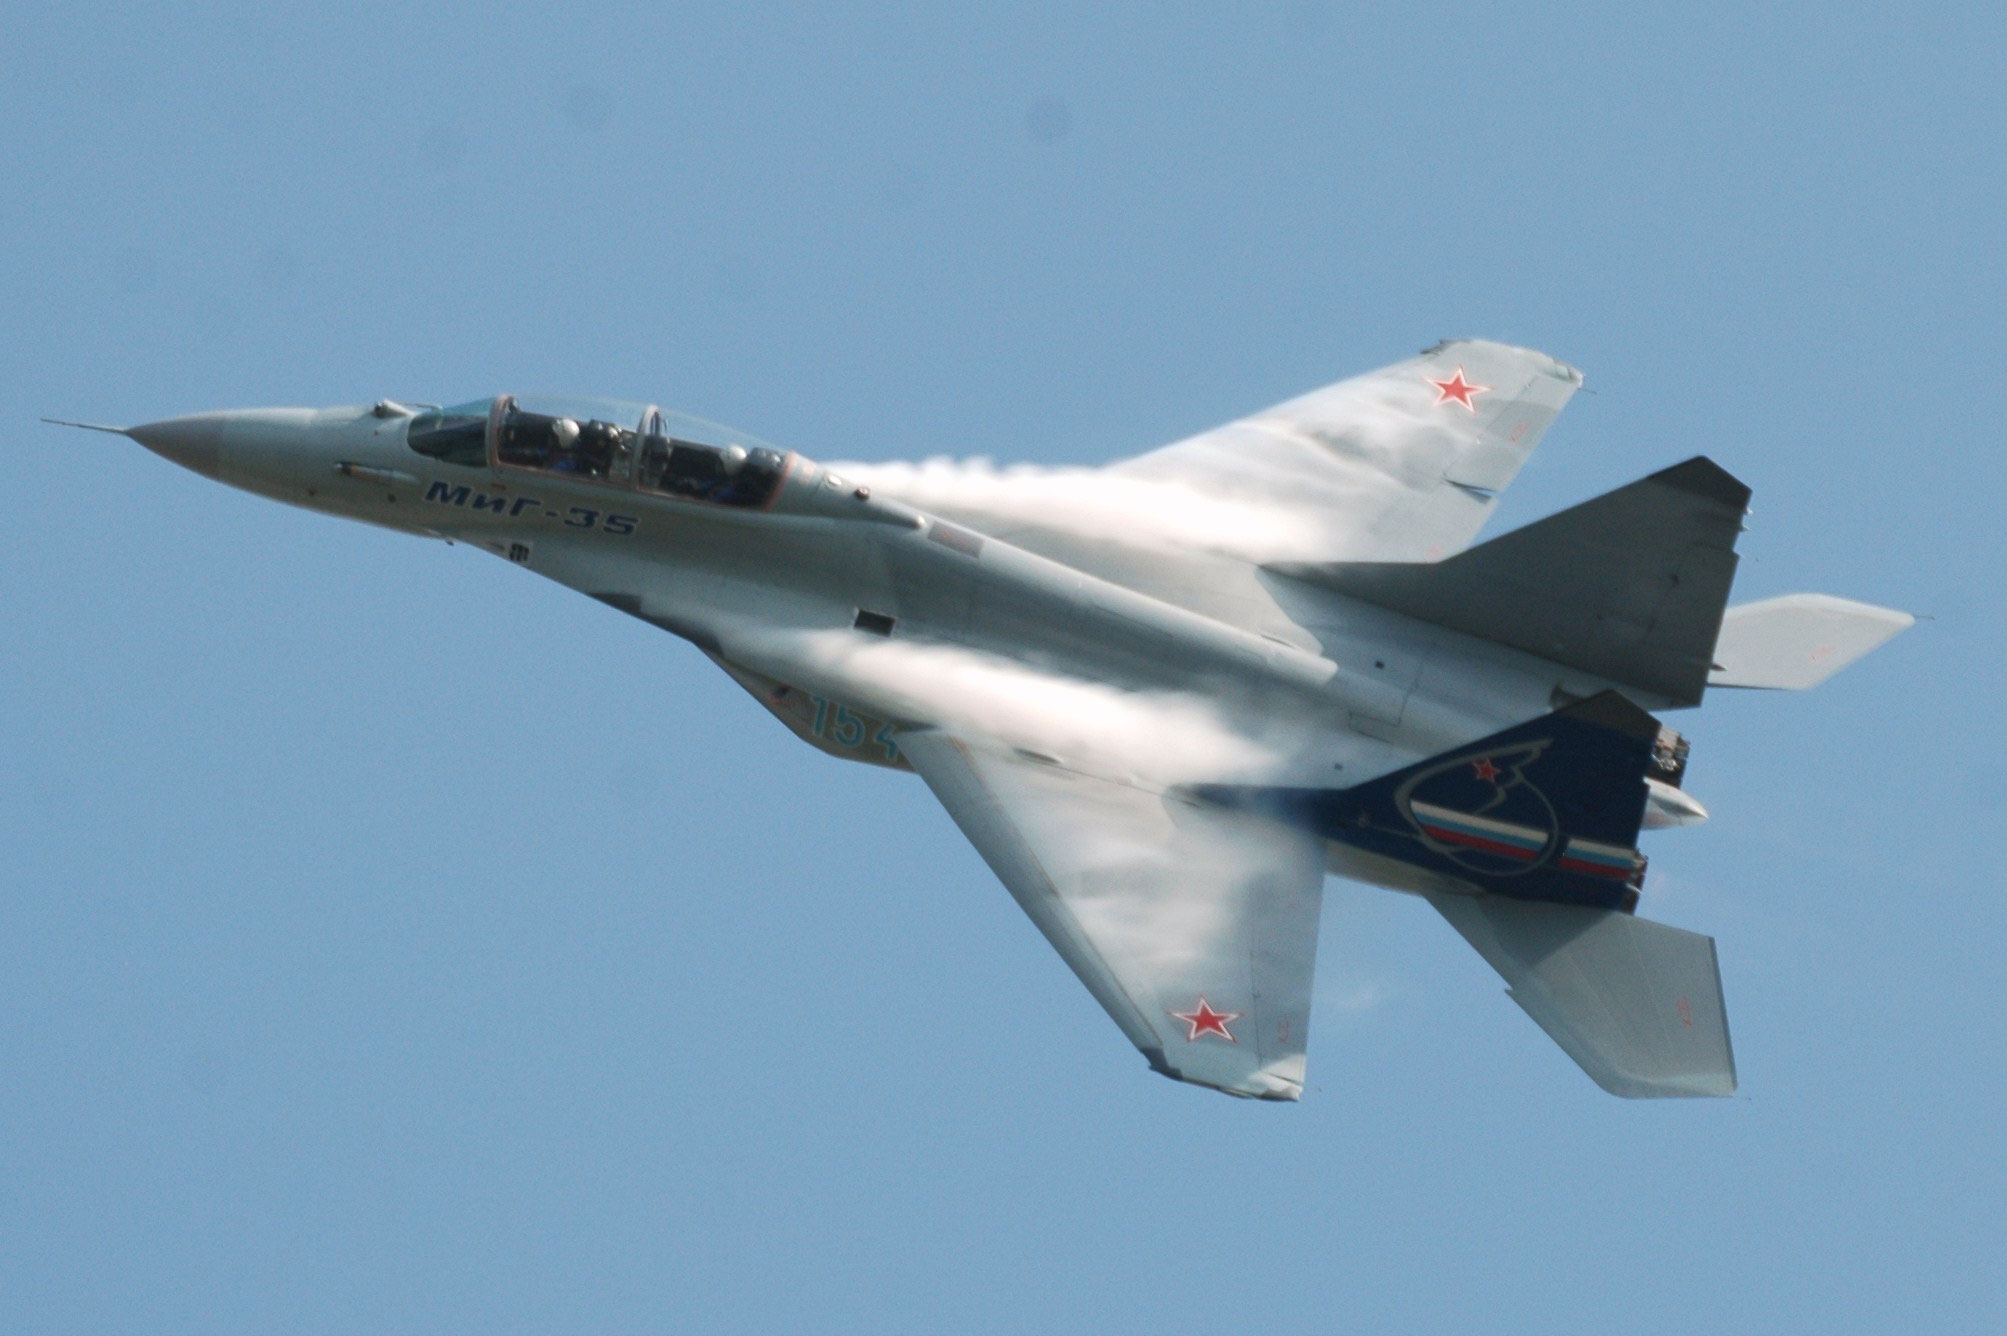 Egypt To Receive Advanced Fulcrum Fighters from MiG